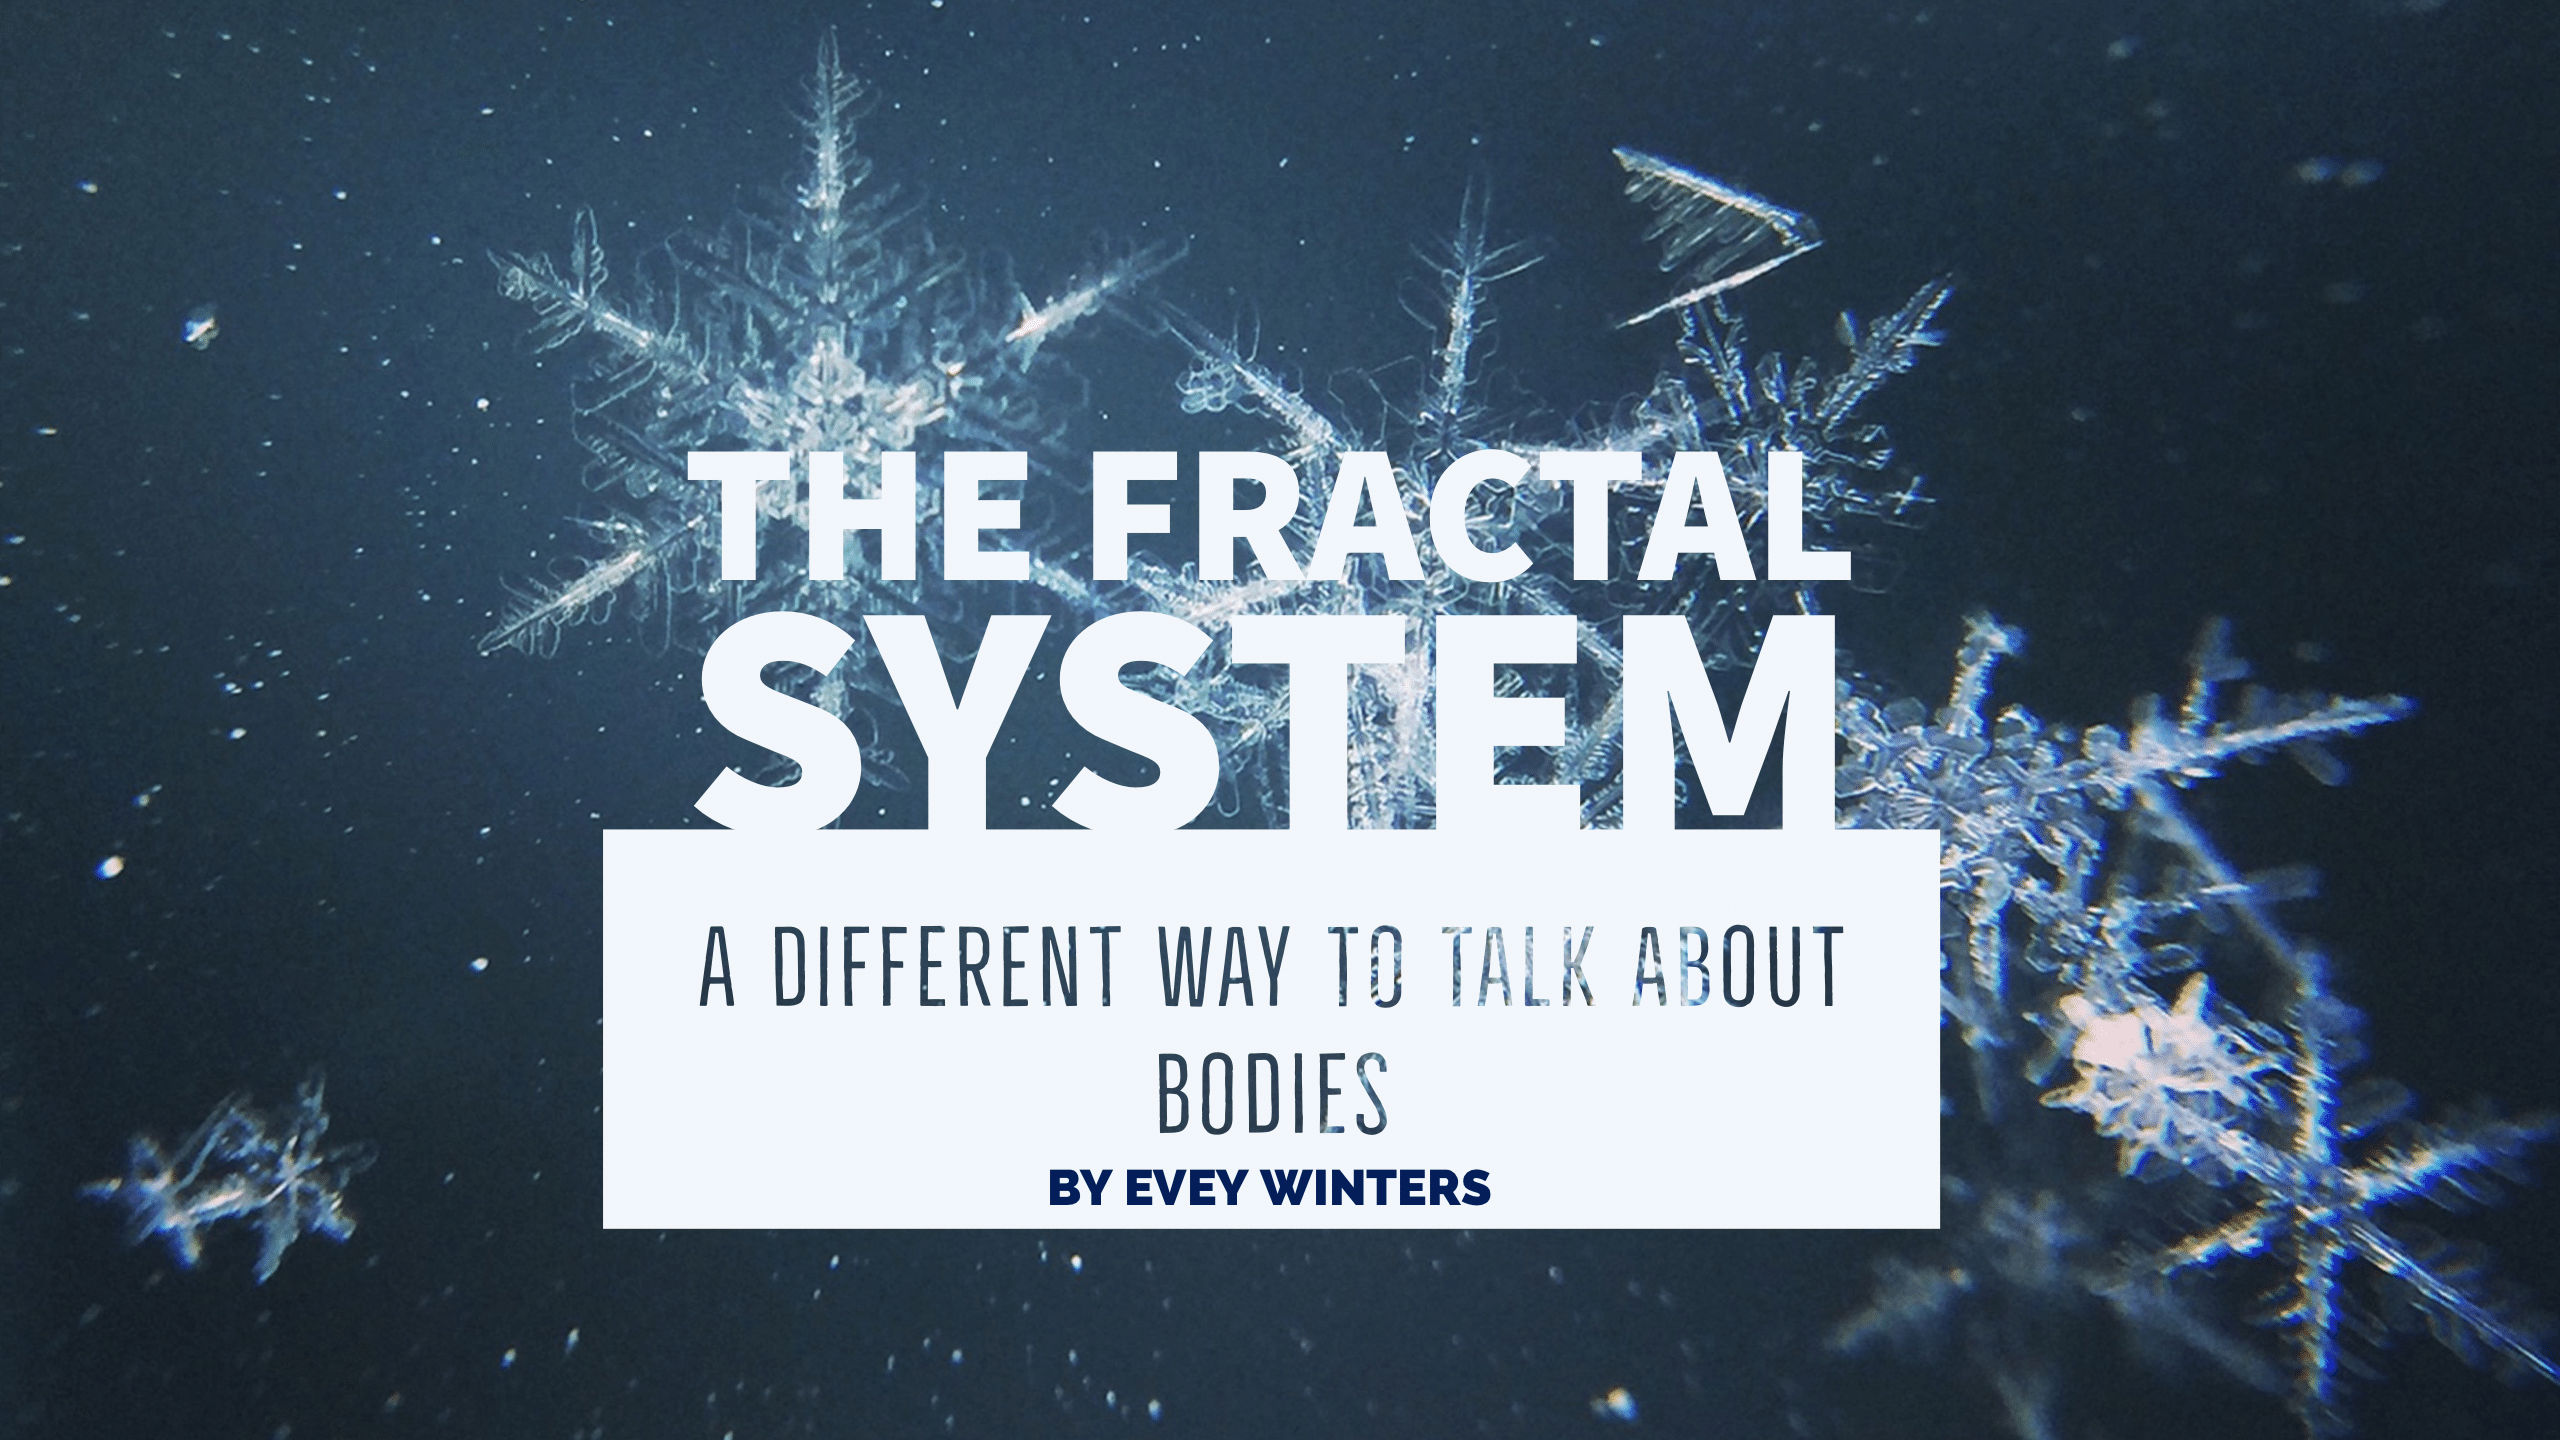 The Fractal System: A Different Way to Discuss Bodies